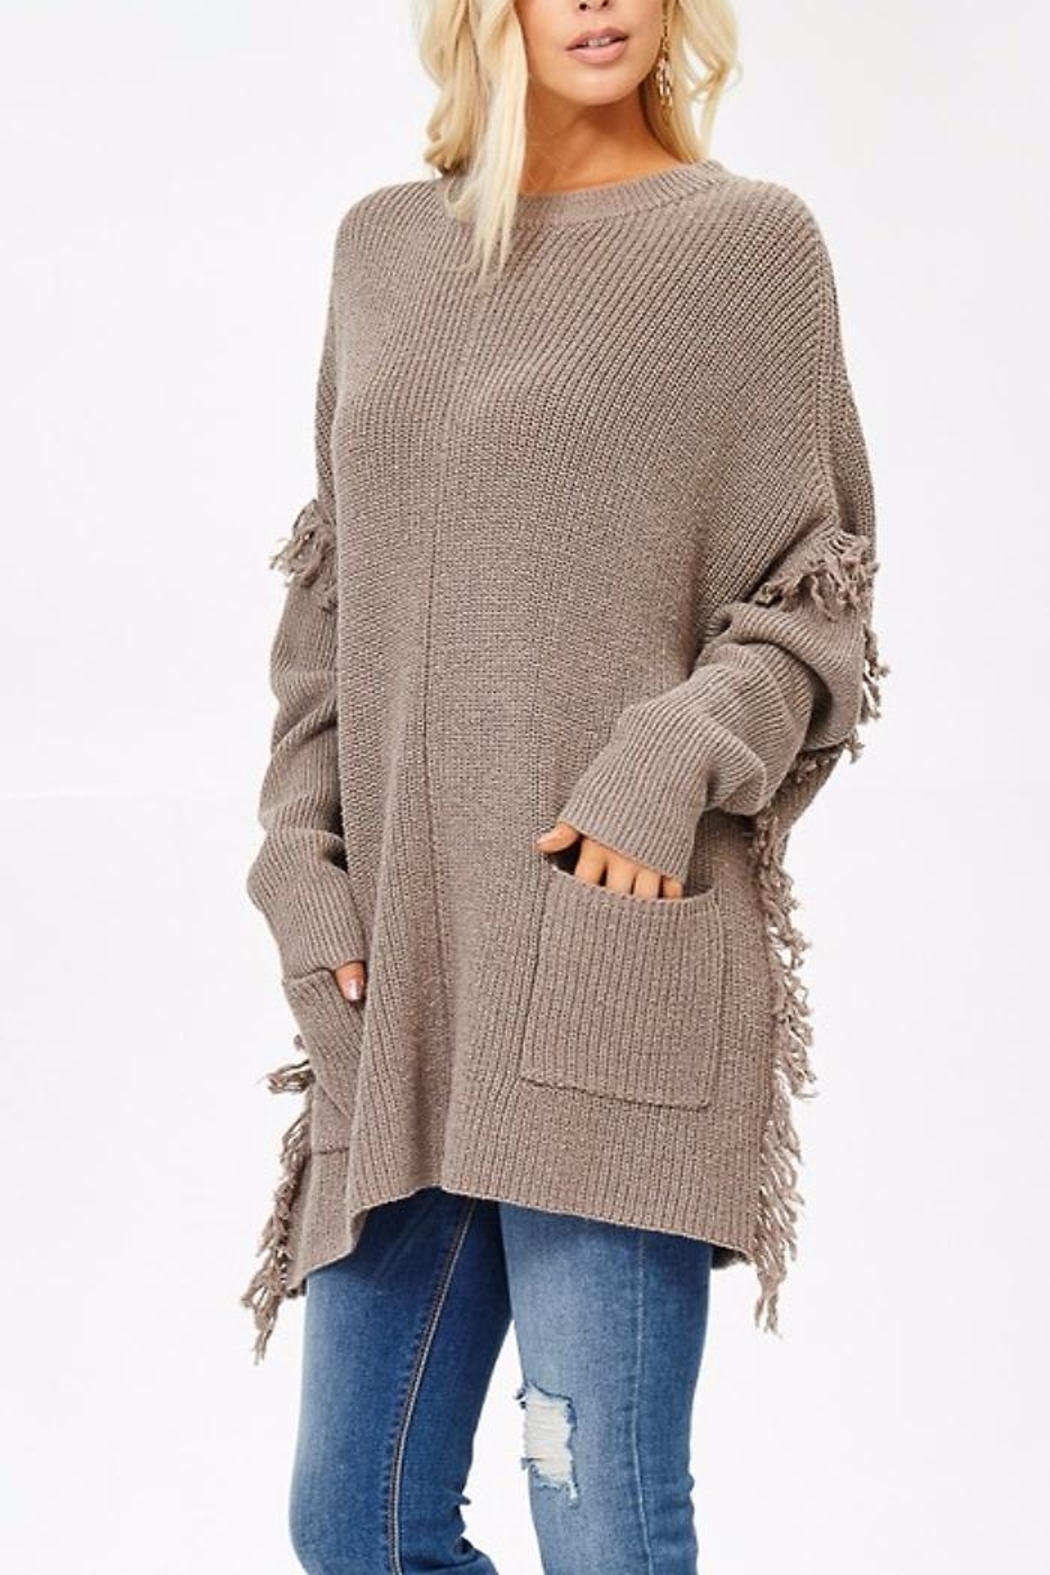 People Outfitter Ella's Long Sweater - Front Full Image